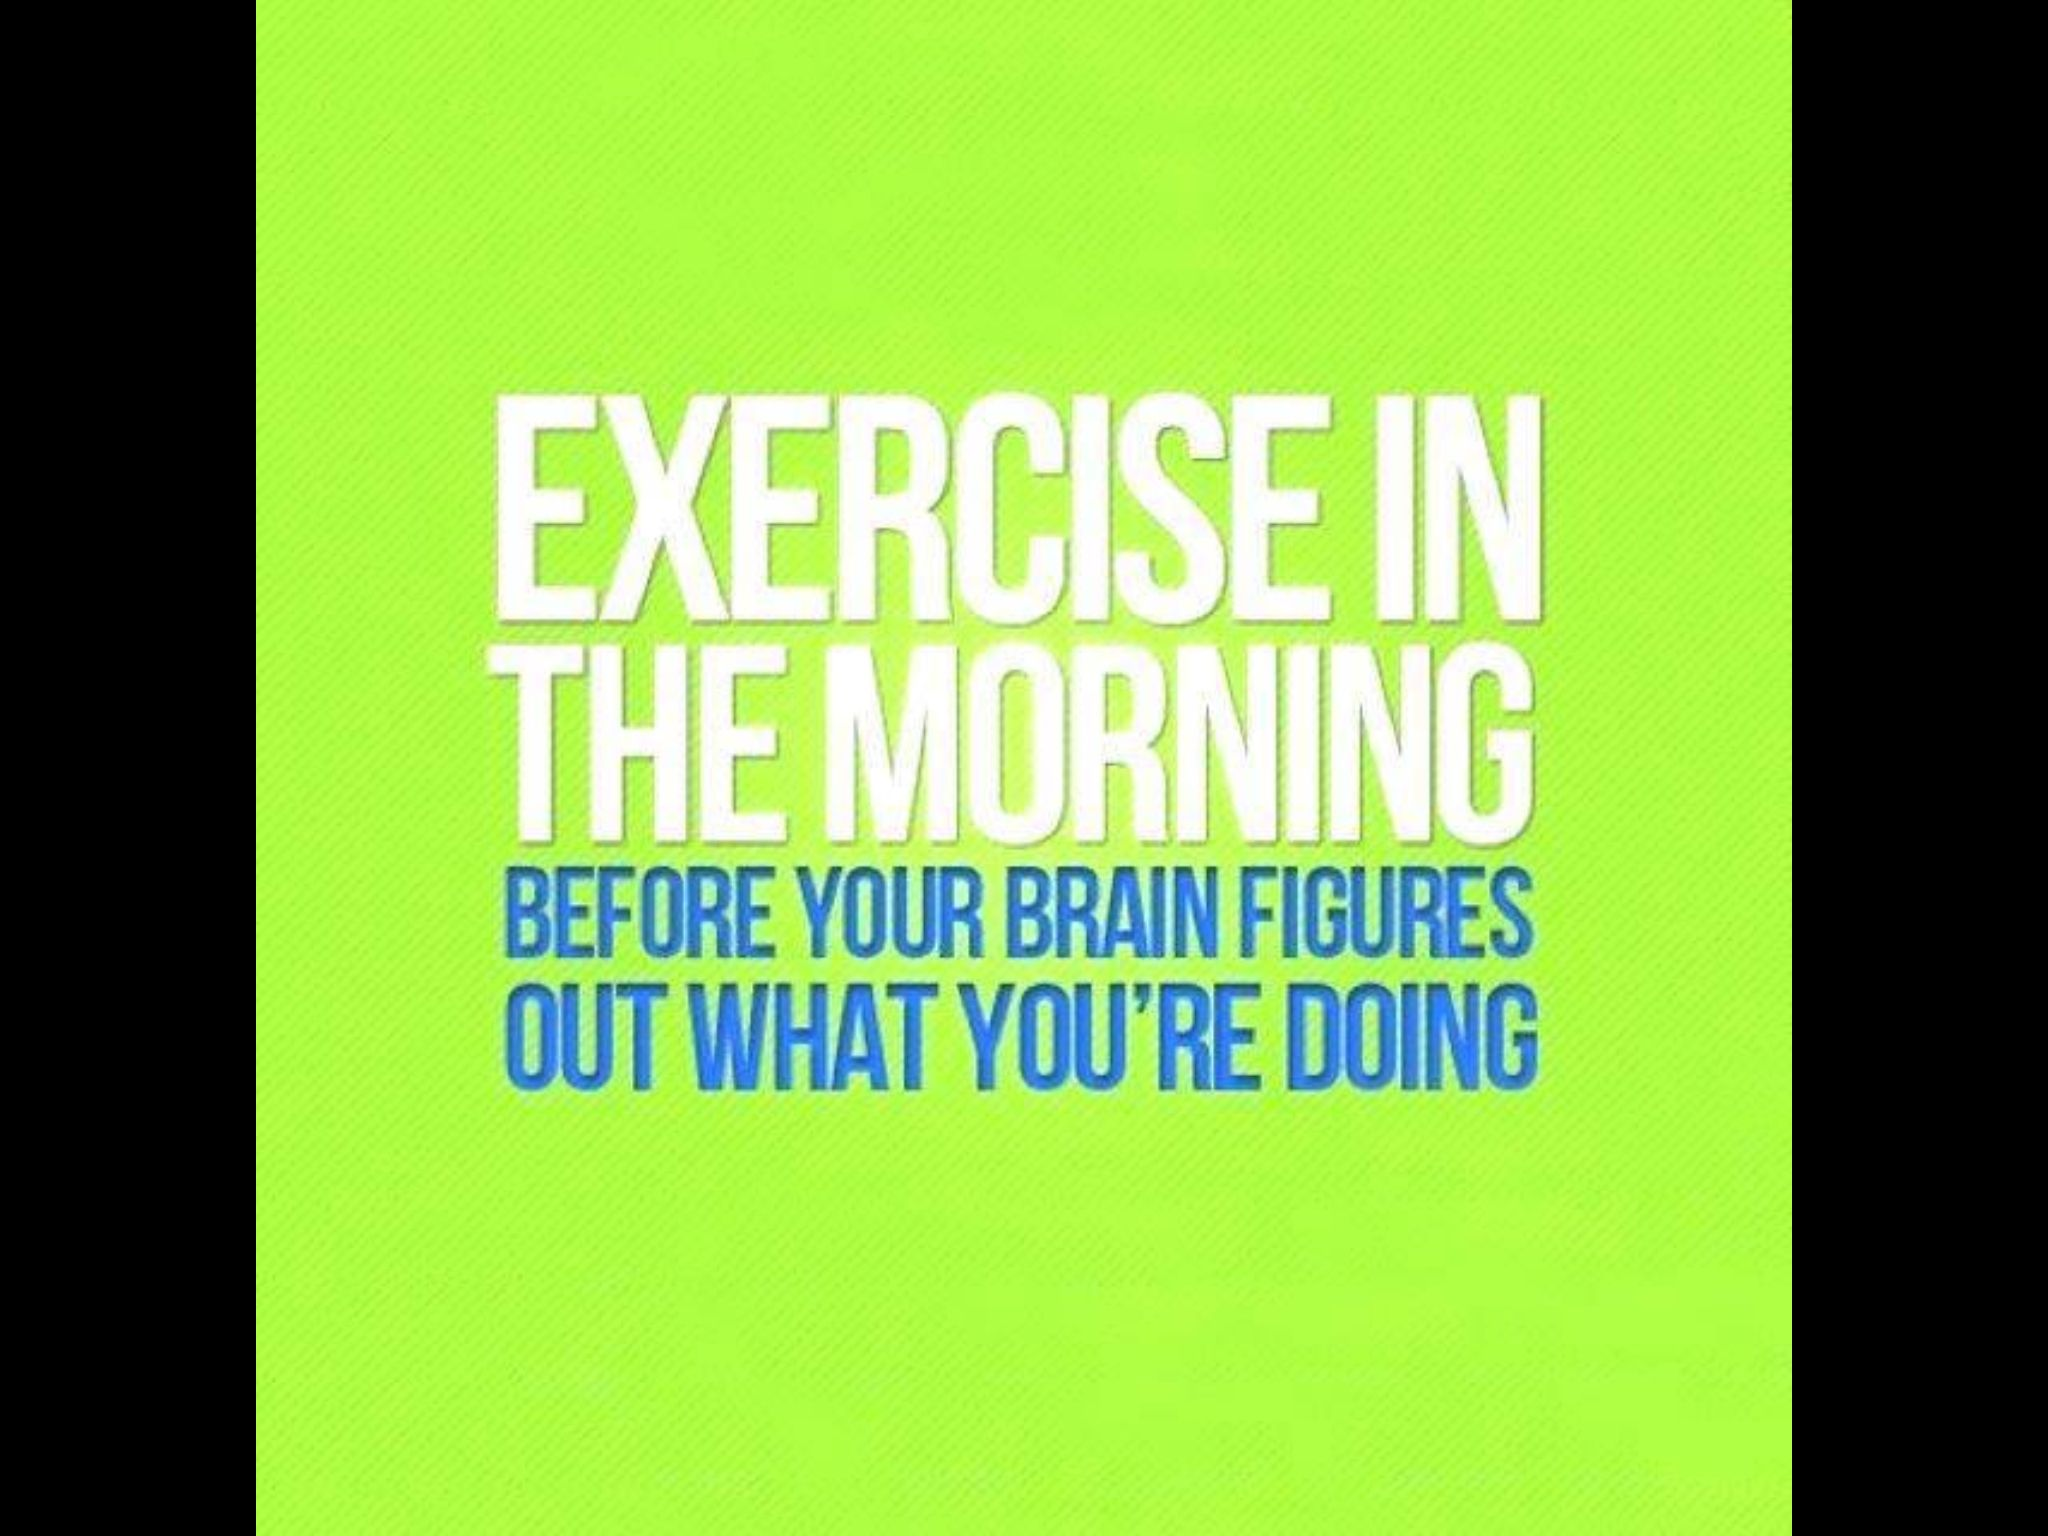 Morning Workout Quotes This Is My Success Plan  Health  Pinterest